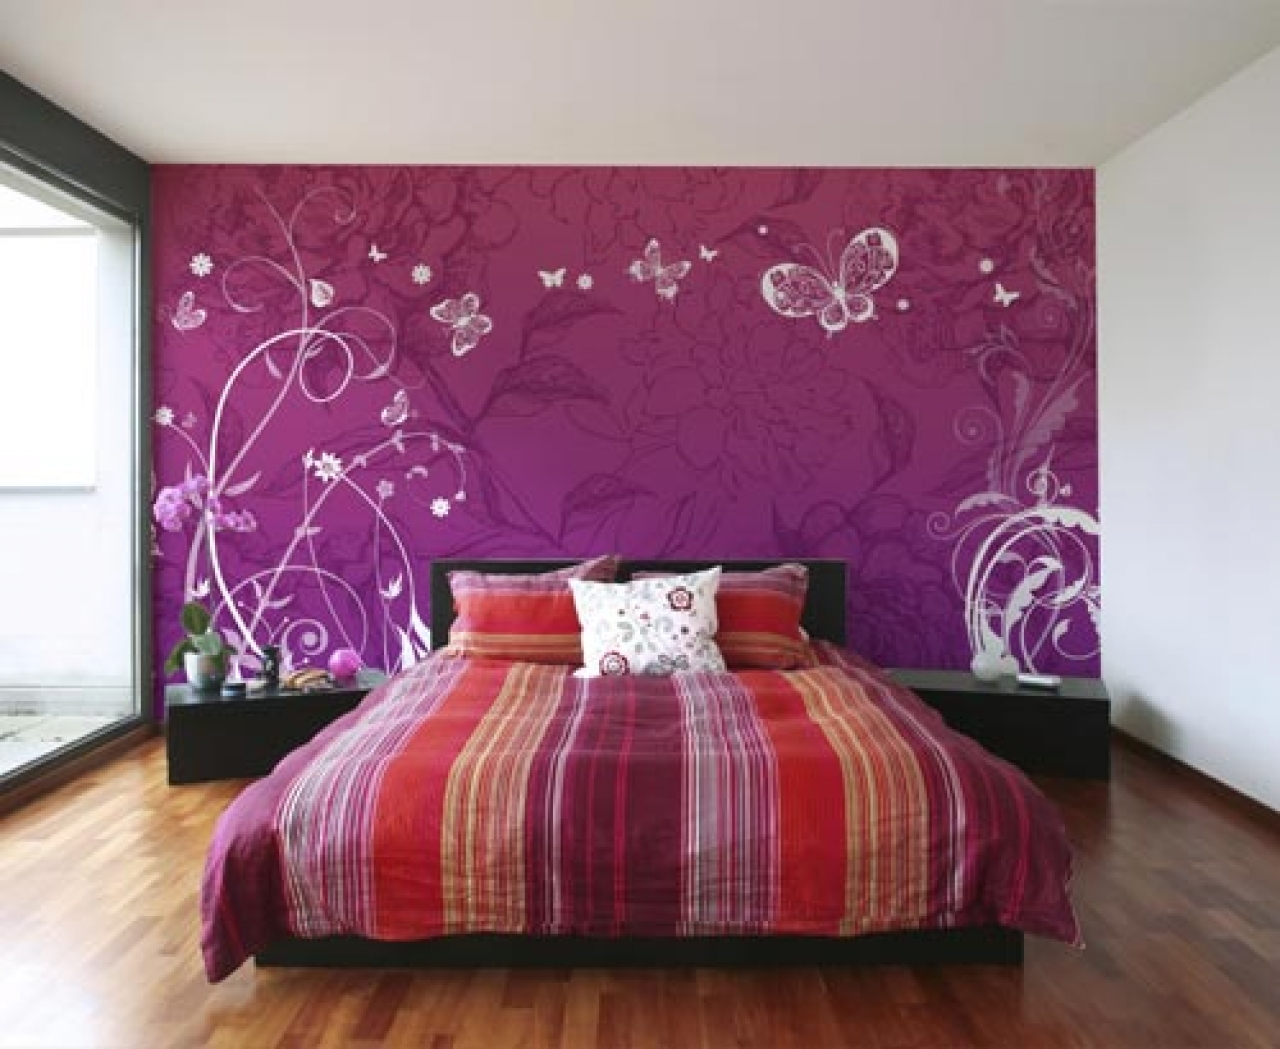 Offer a wide selection of kids bedroom decor ideas including wallpaper 1280x1049